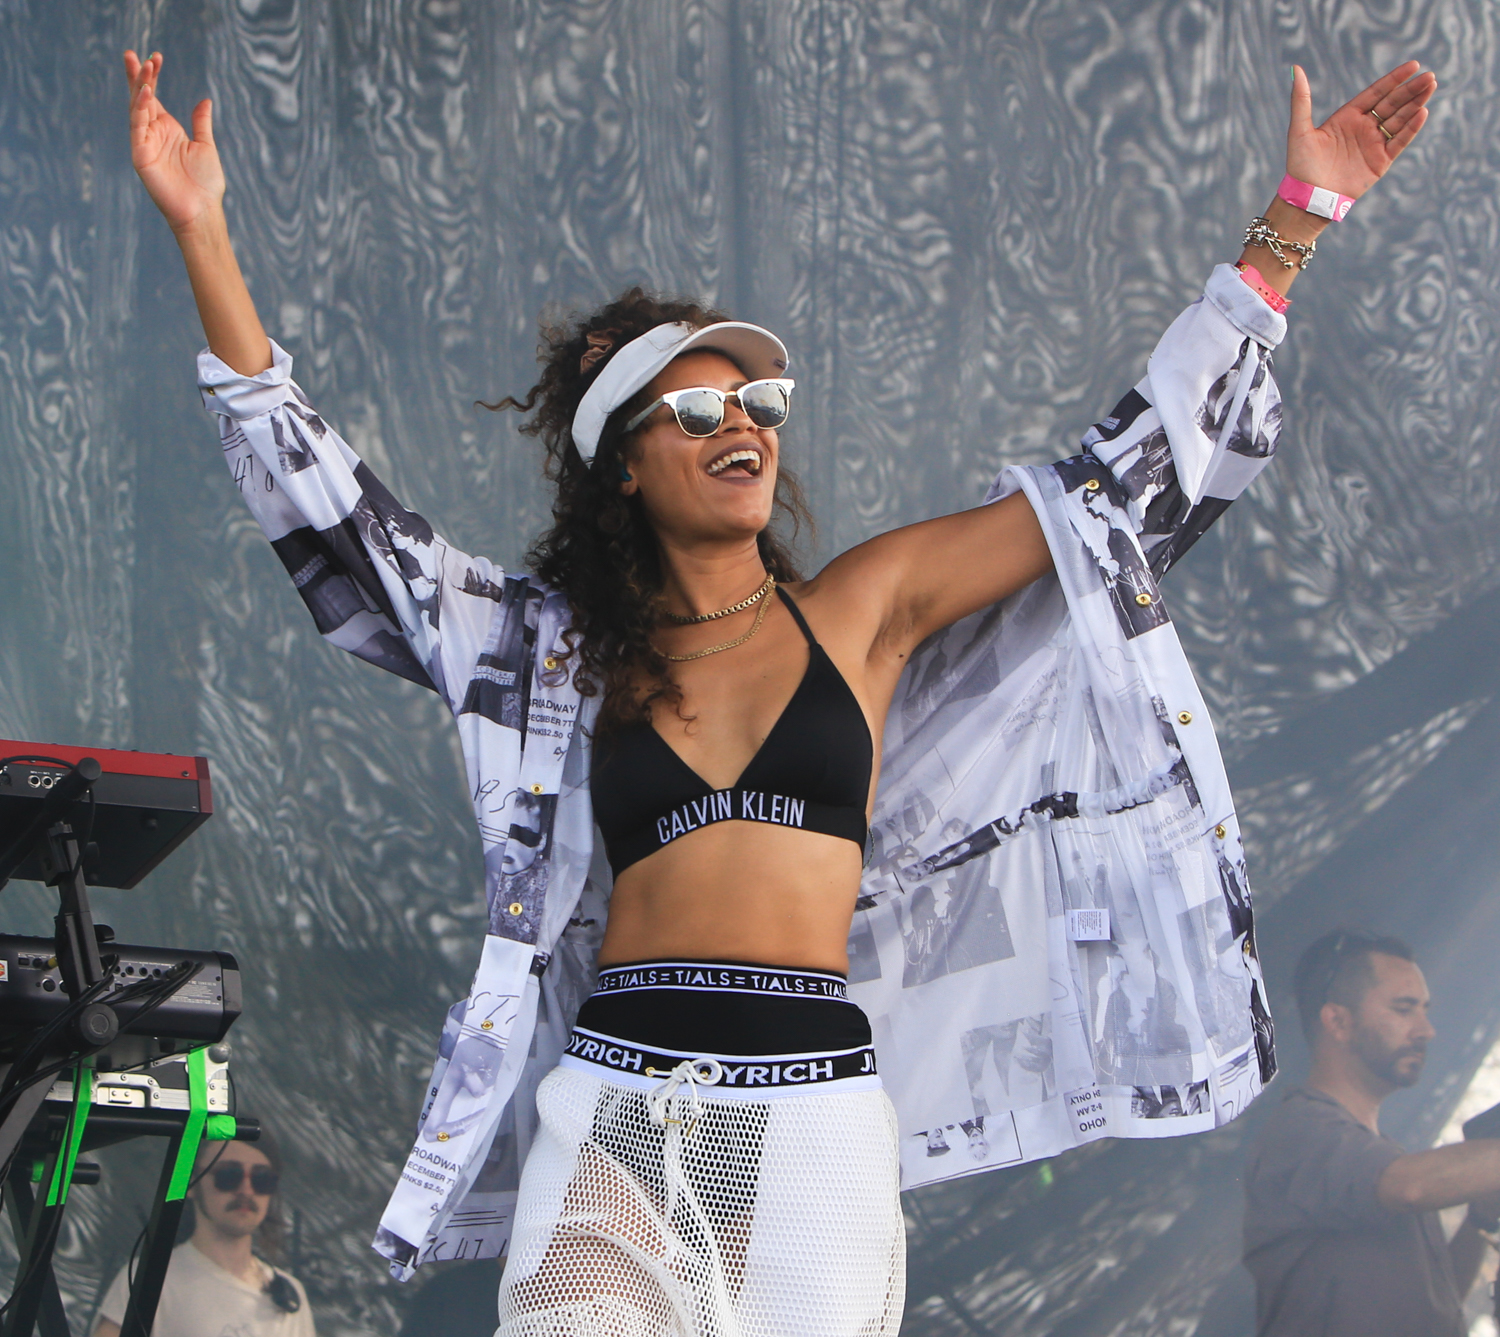 AlunaGeorge performs at the Spotify House @SXSW2016 photo: Anna Webber/Gettyimages for Spotify